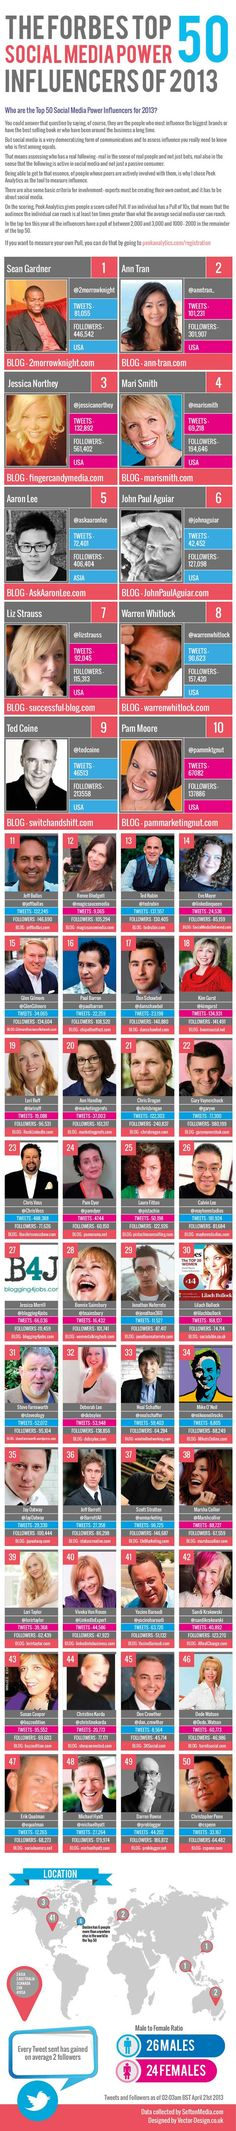 The Forbes Top 50 Social Media Influencers for 2013